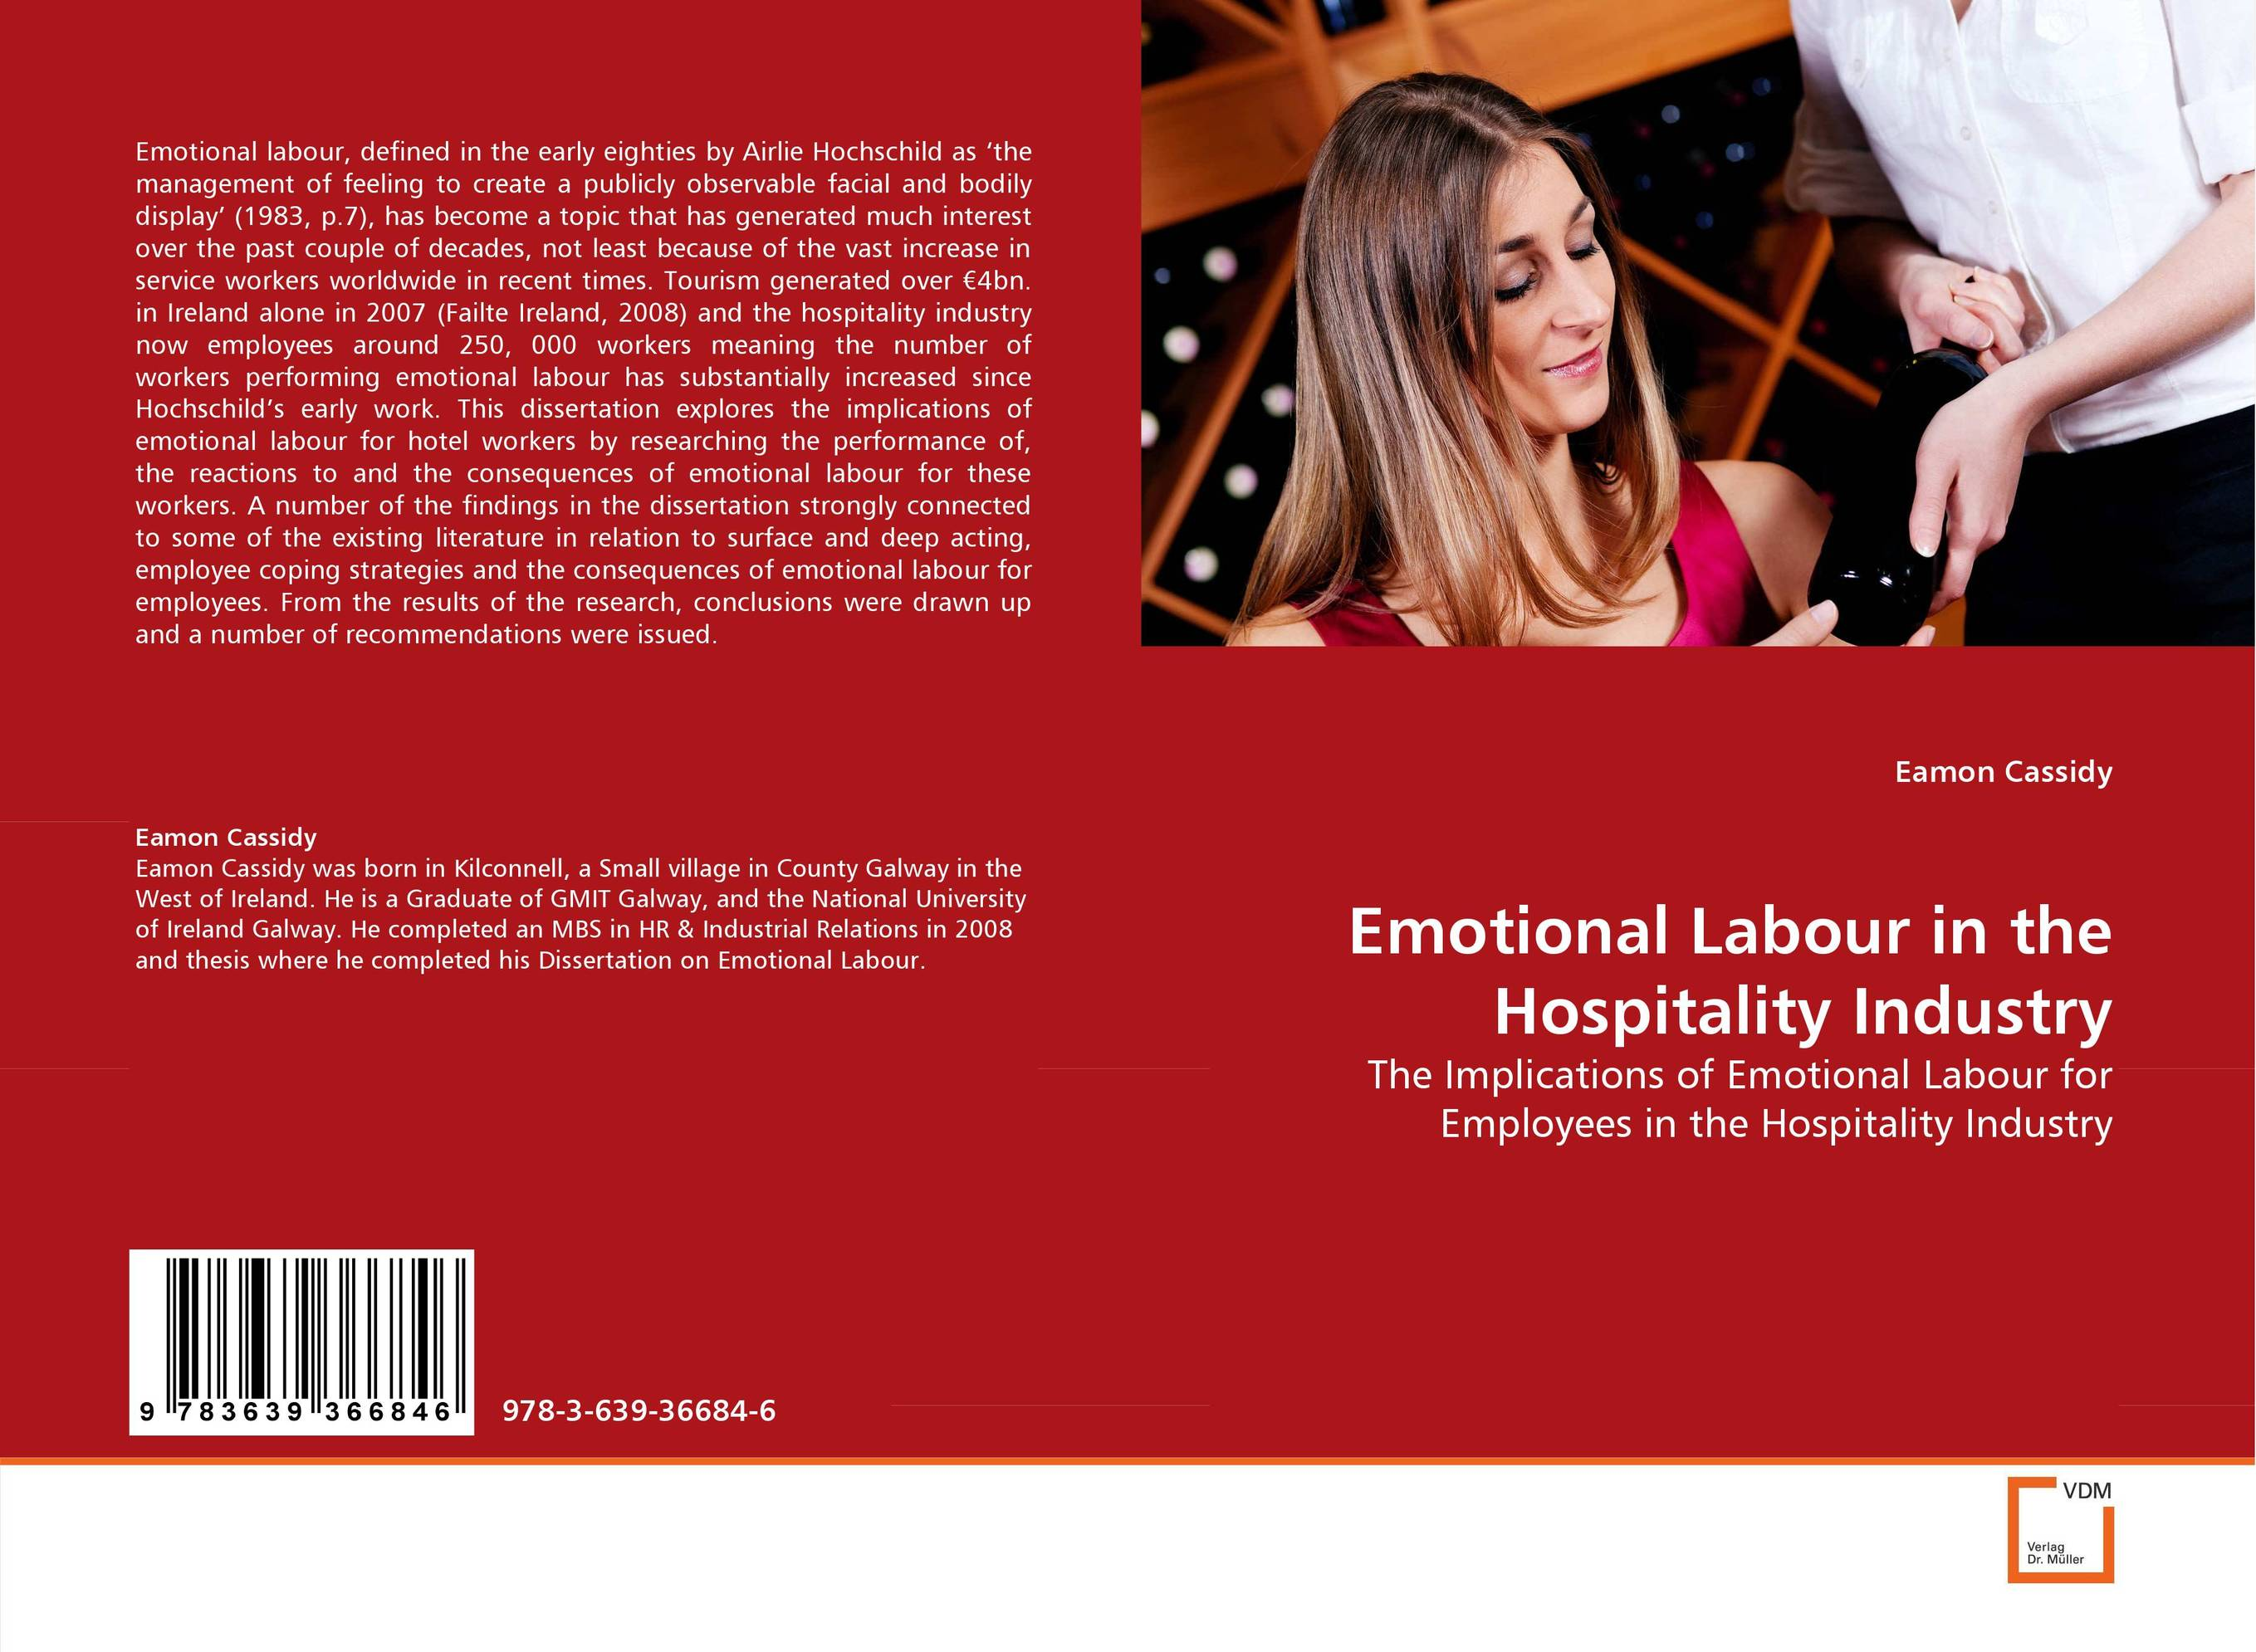 emotional labour in call centres arlie hochschild The sociologist arlie hochschild provides the first definition of emotional labor, which is a form of emotion regulation that creates a publicly visible facial and bodily display within the workplace.